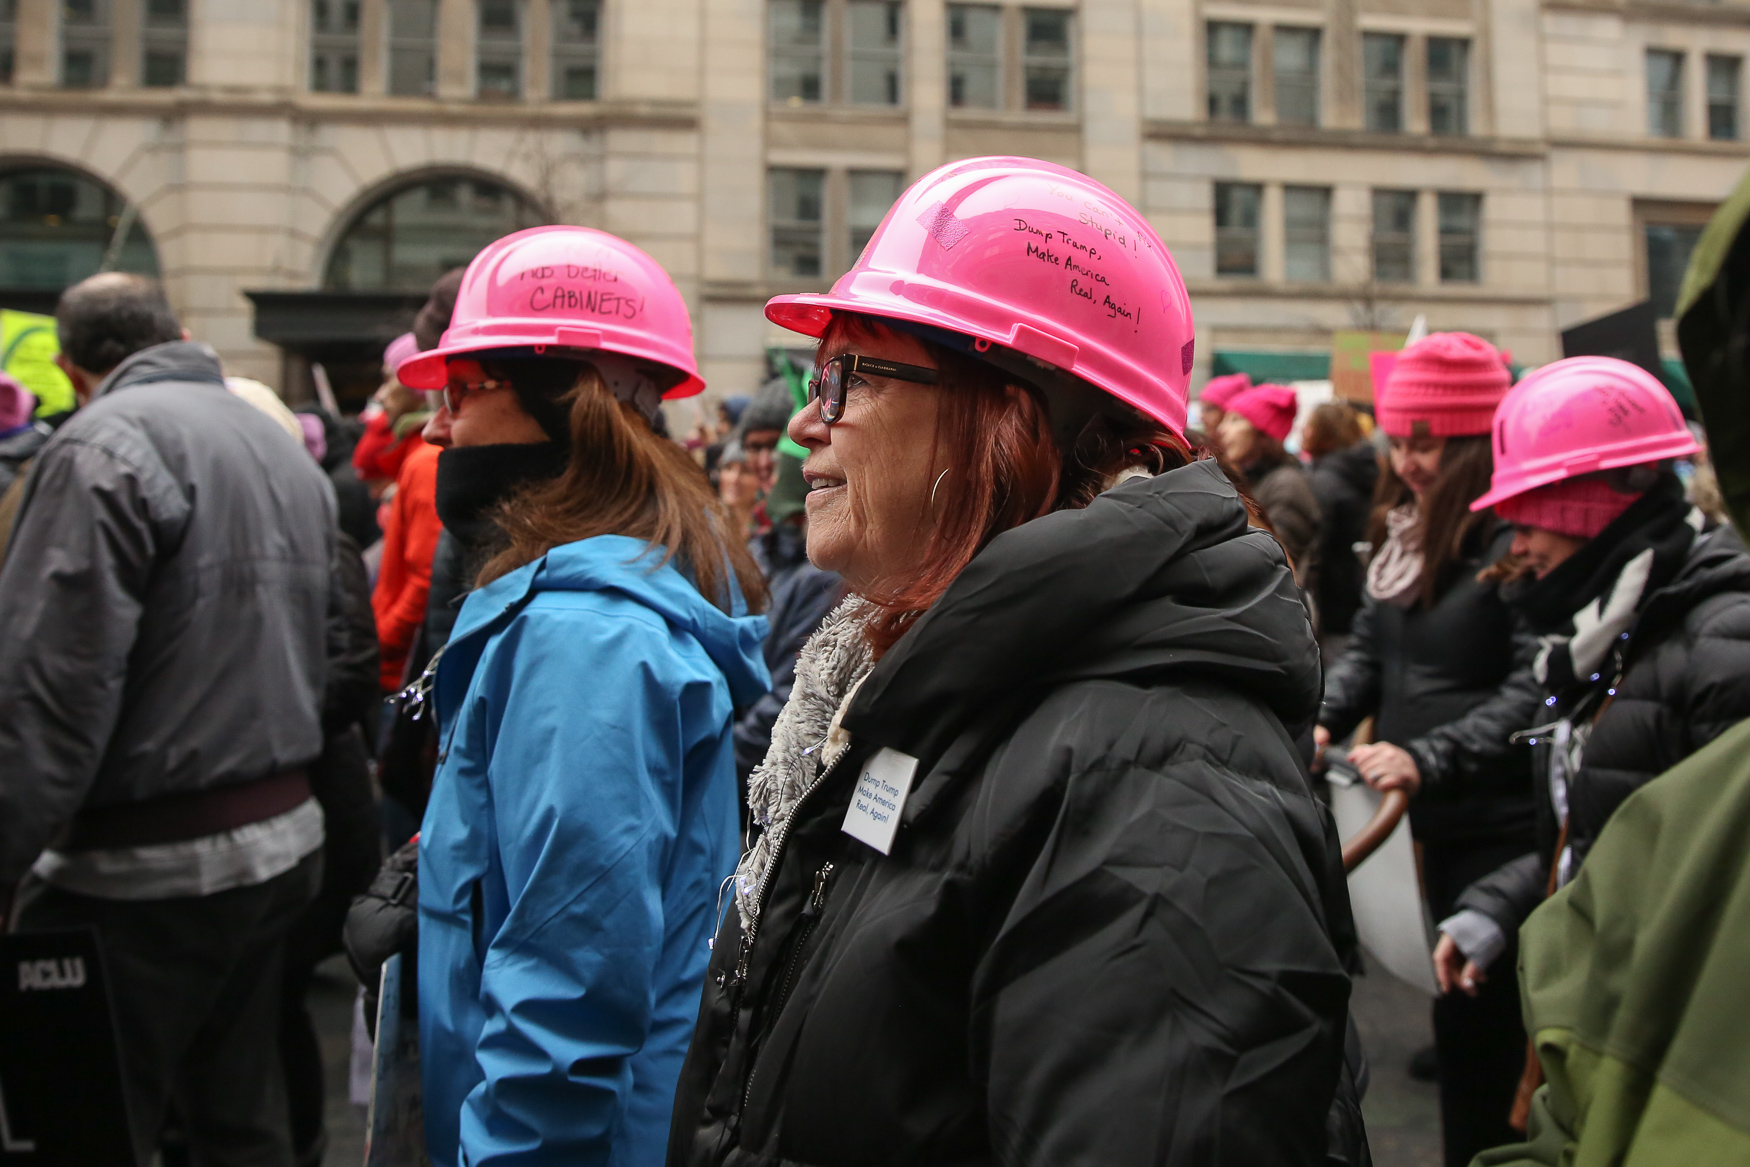 The 2019 Women's March took over a few{ } blocks downtown today. The march didn't draw as many participants in years past as allegations of anti-semitism roiled the organization, however the D.C. speakers prominently featured Jewish women of color.{ } Still, thousands made their way around the block from Freedom Plaza, avoiding the National Mall due to the government shut down. The participants included Indigenous and Muslim women's groups, however anti-abortion protestors and religious groups that oppose the march were dotted along route. (Amanda Andrade-Rhoades/DC Refined)